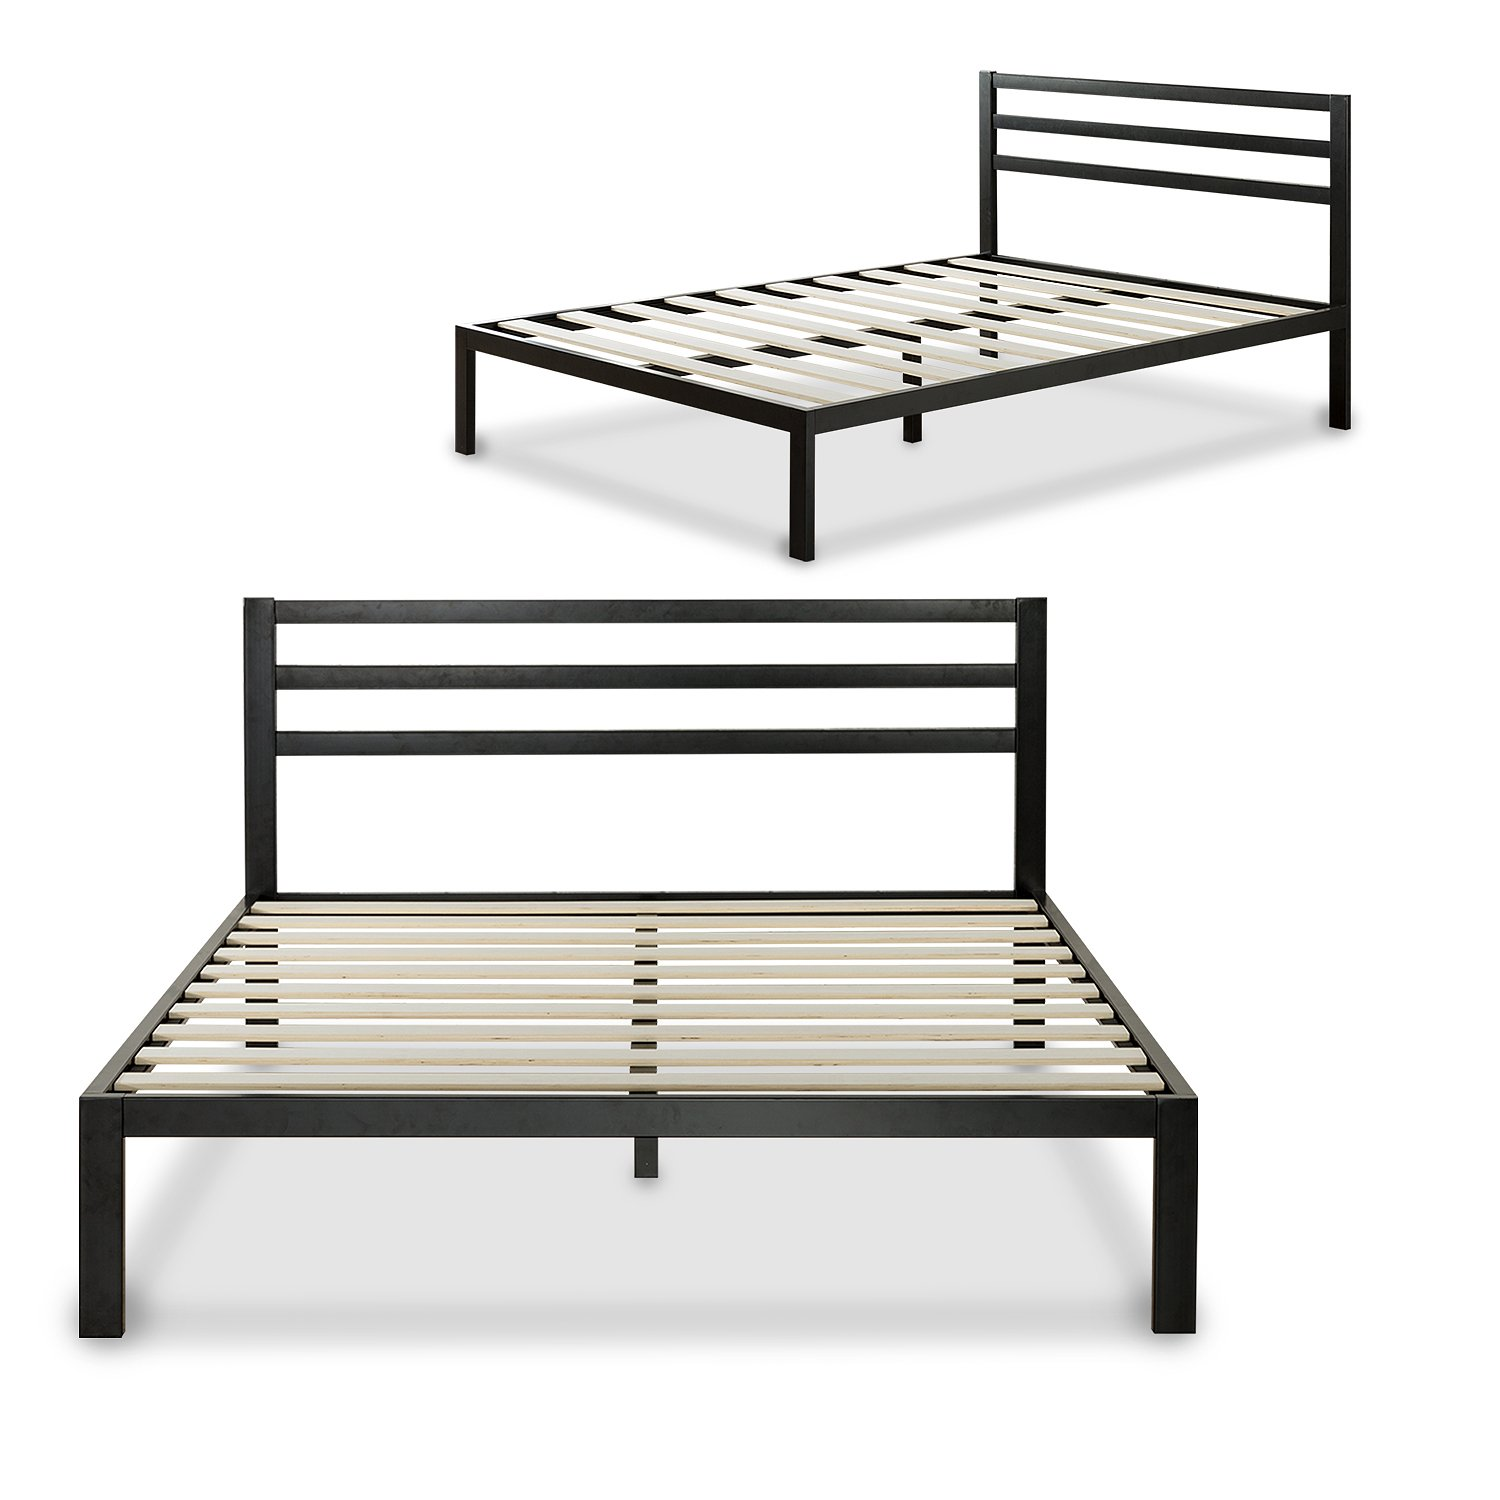 Best bed frames reviews and buying guide 2018 for The best bed frames